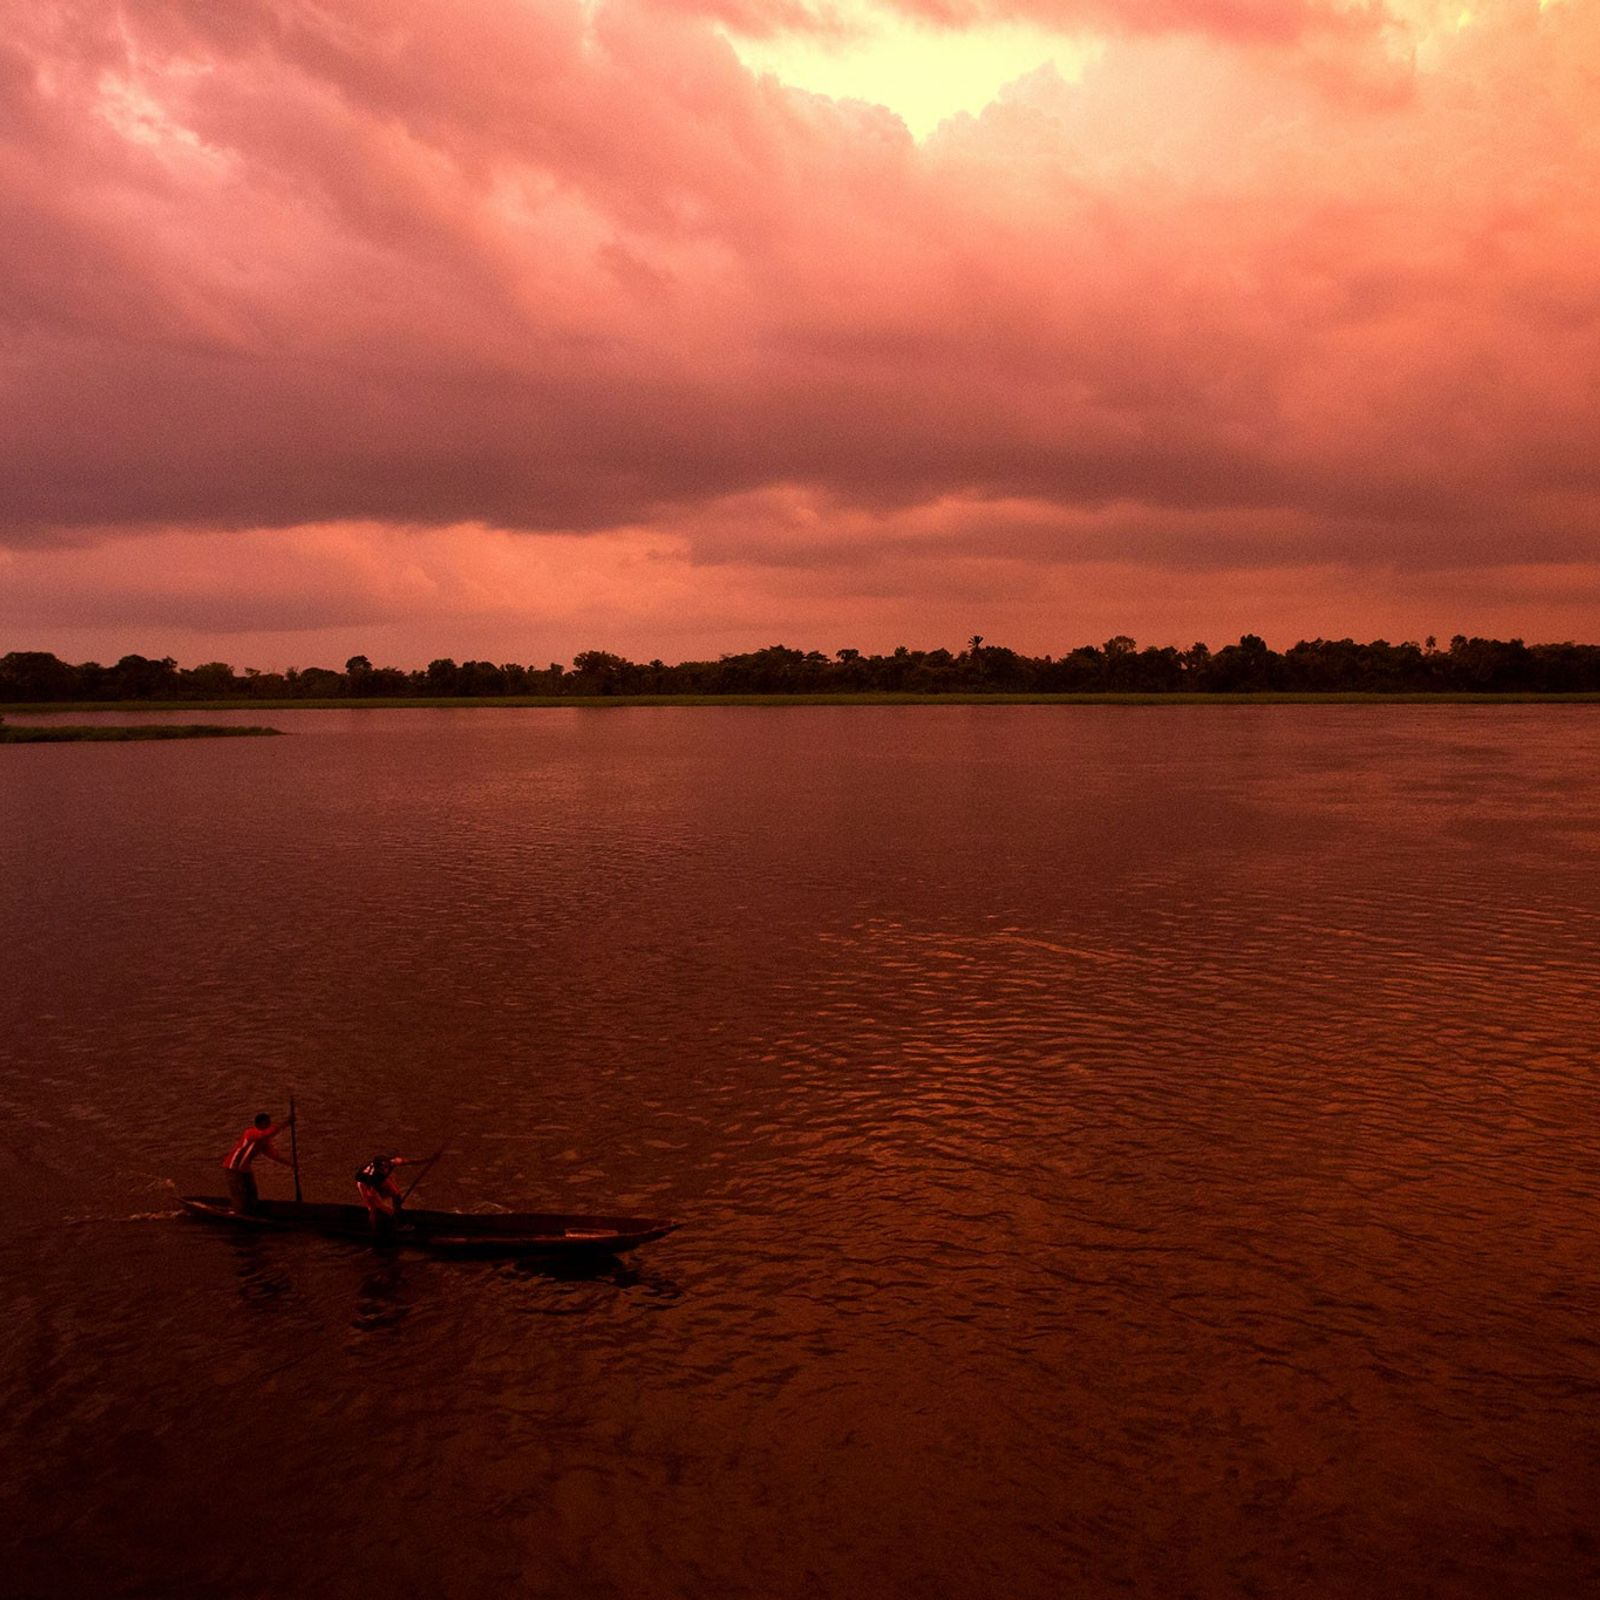 Two men paddle a canoe on the Congo River.